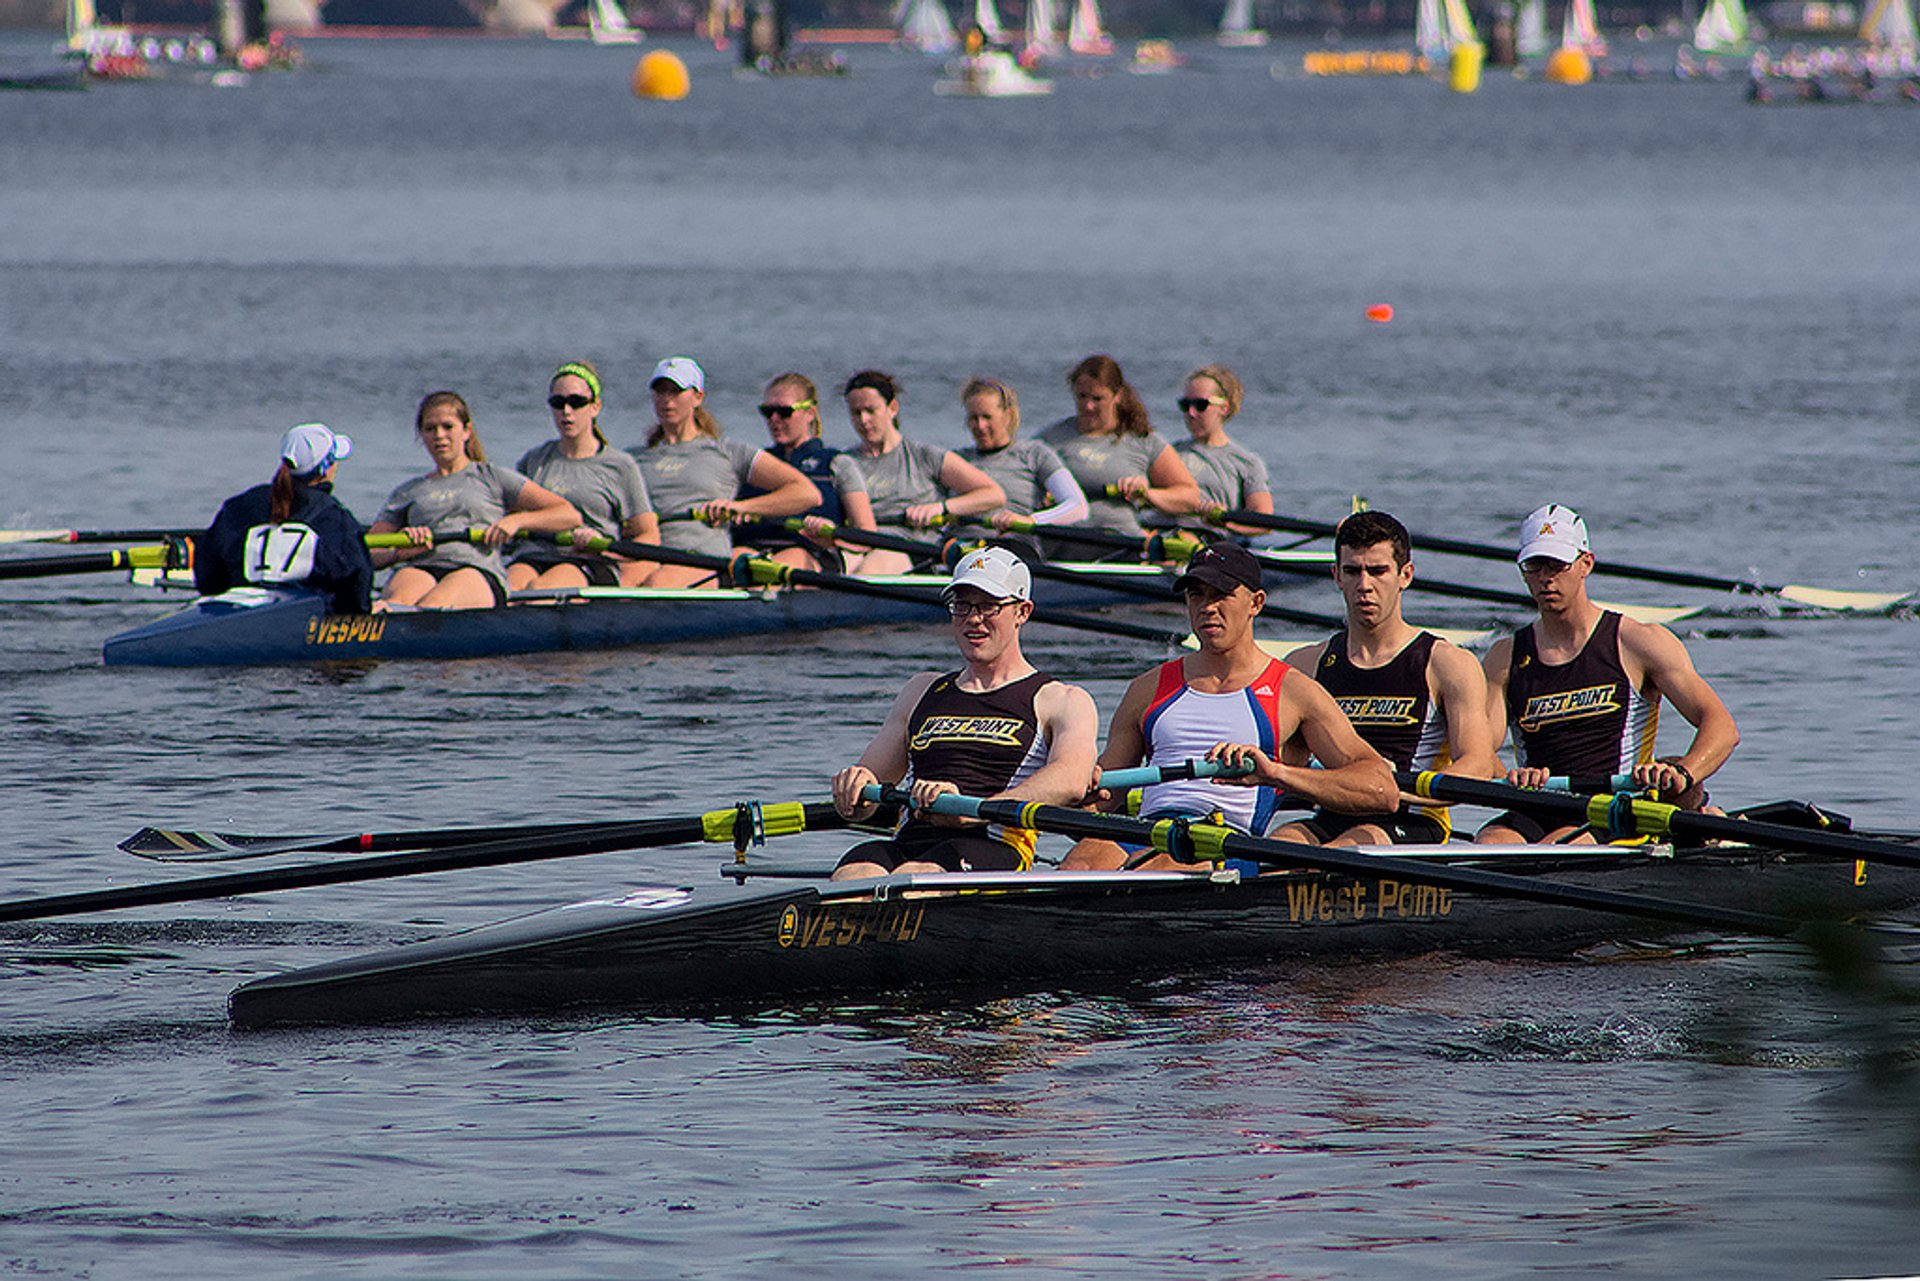 Charles Canoe and Kayak Races in Boston 2019 - Best Time